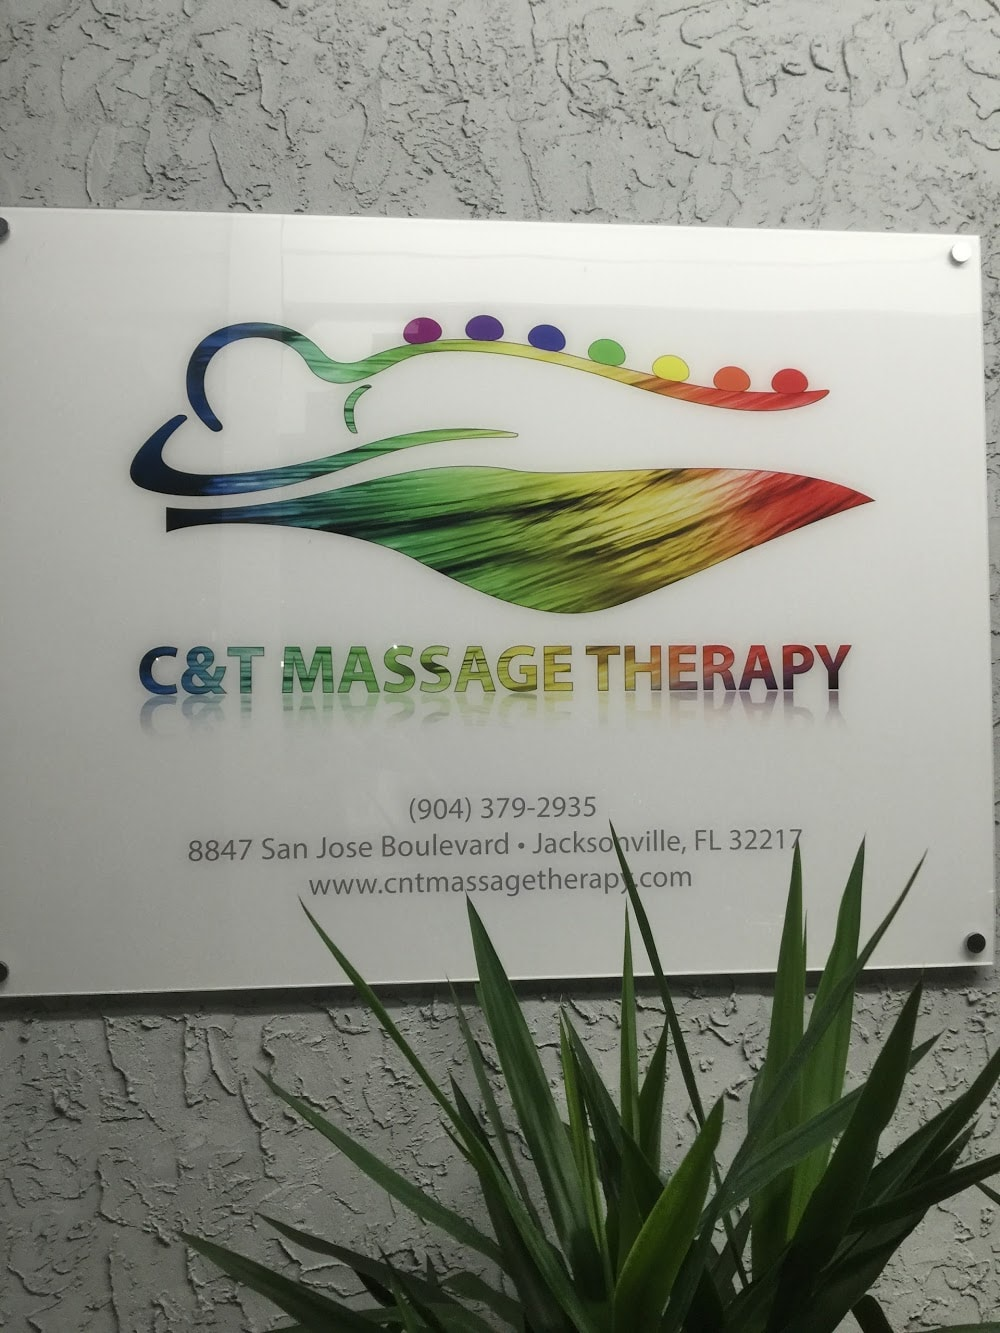 C&T Massage Therapy